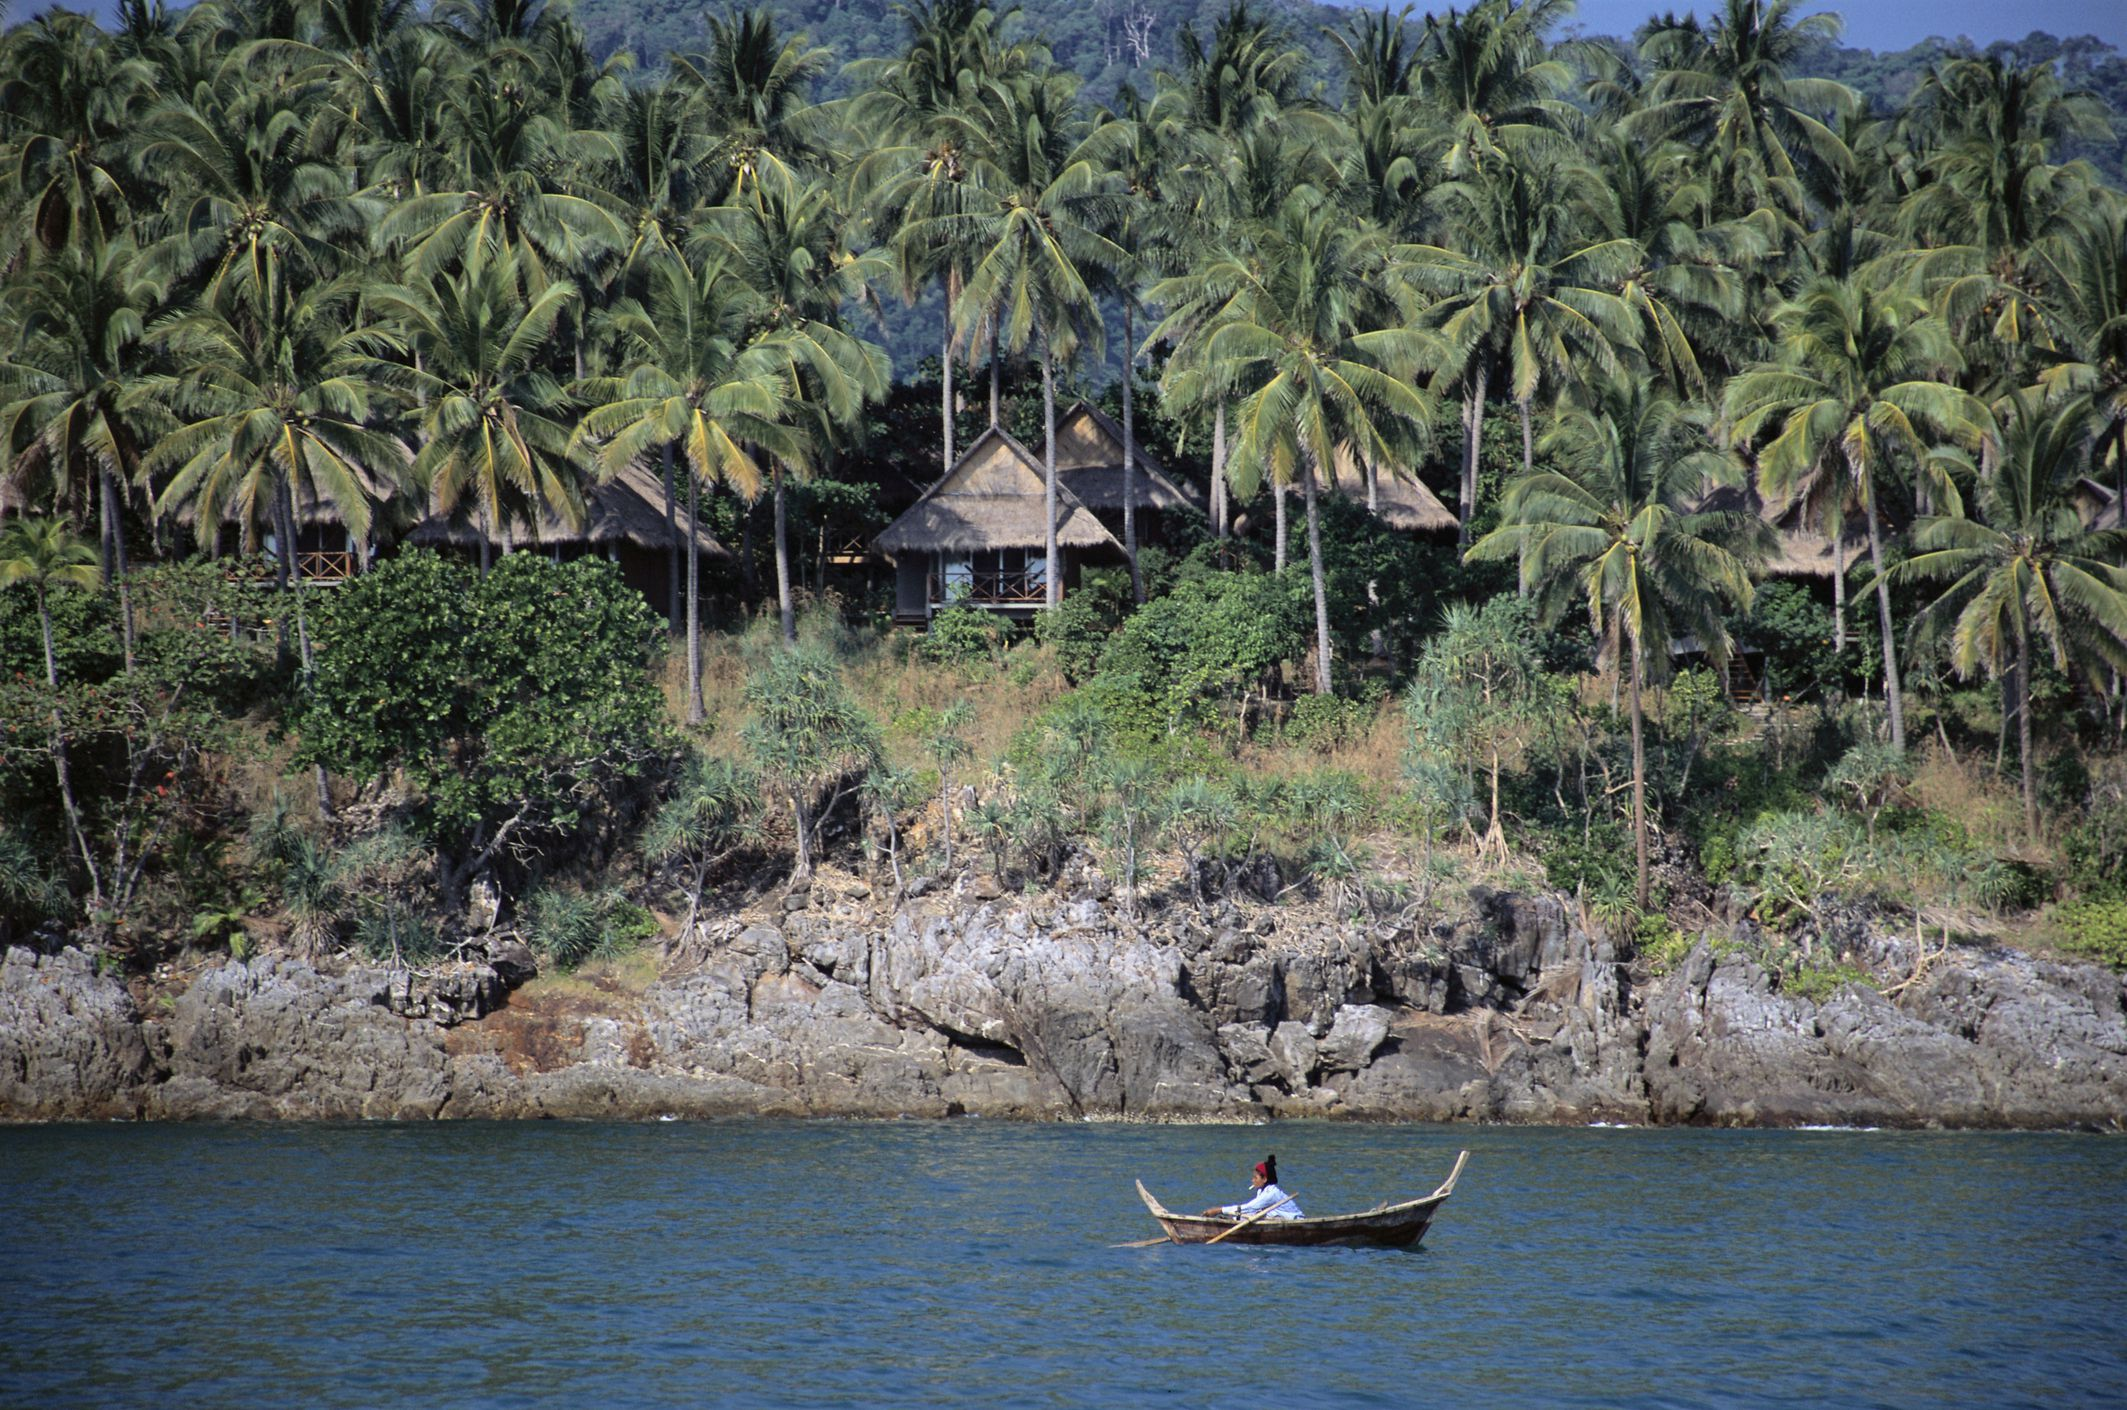 A fisherman rows a small boat below bungalows set on a rocky cliff, Koh Lanta